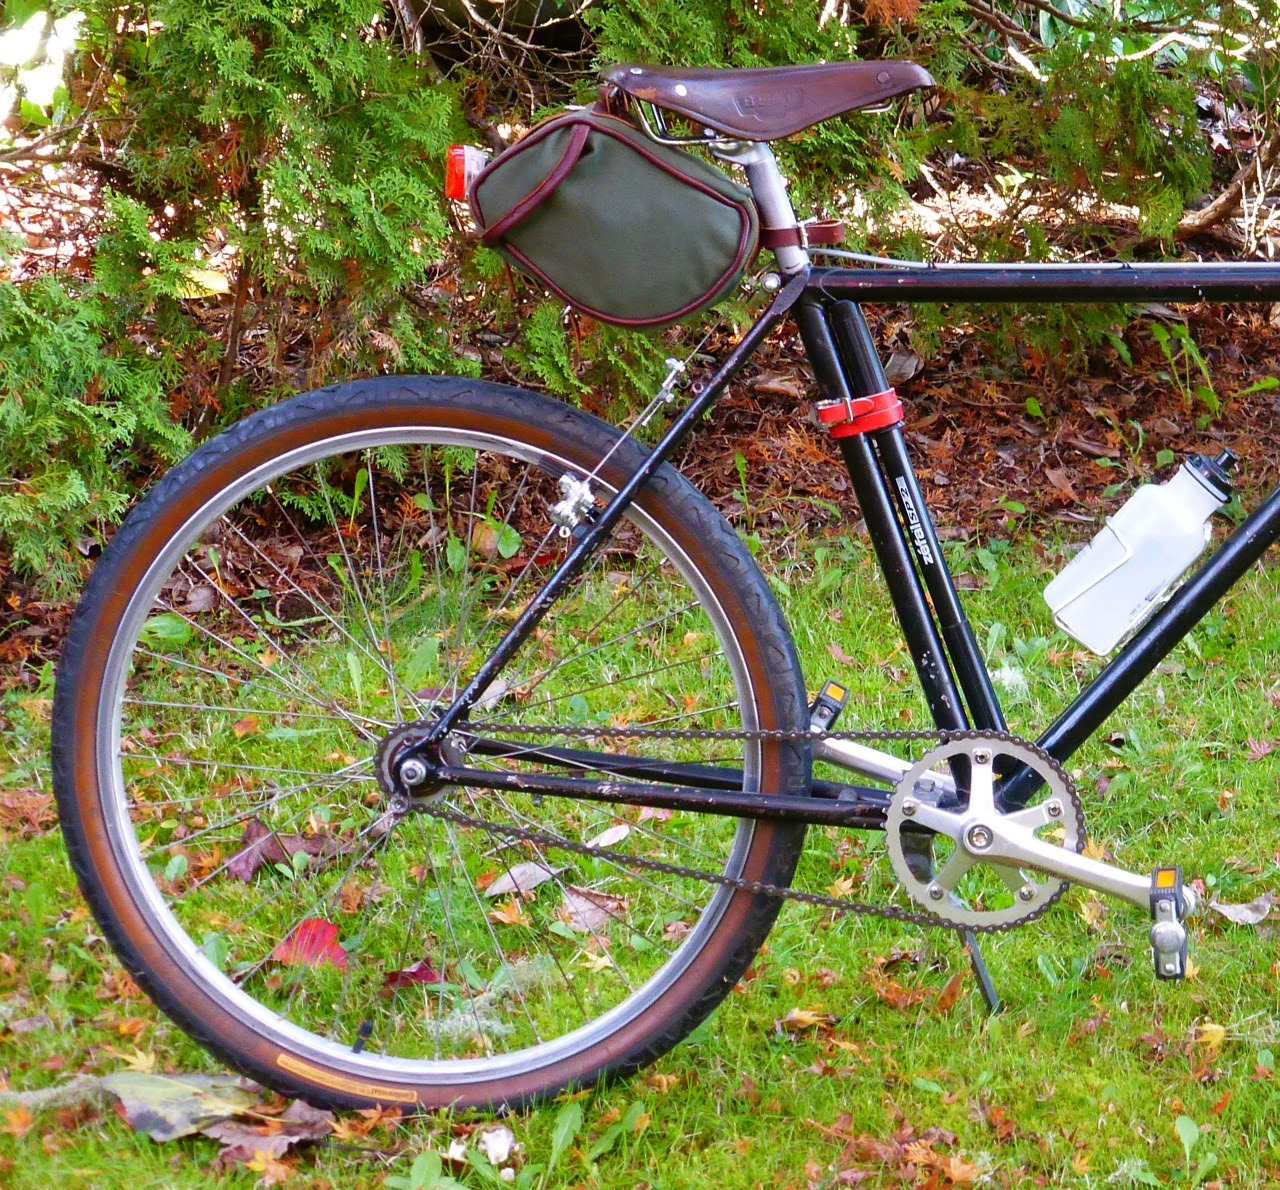 Japanese leather saddle, canvas saddle bag, Eugene, oregon, ugly city bike